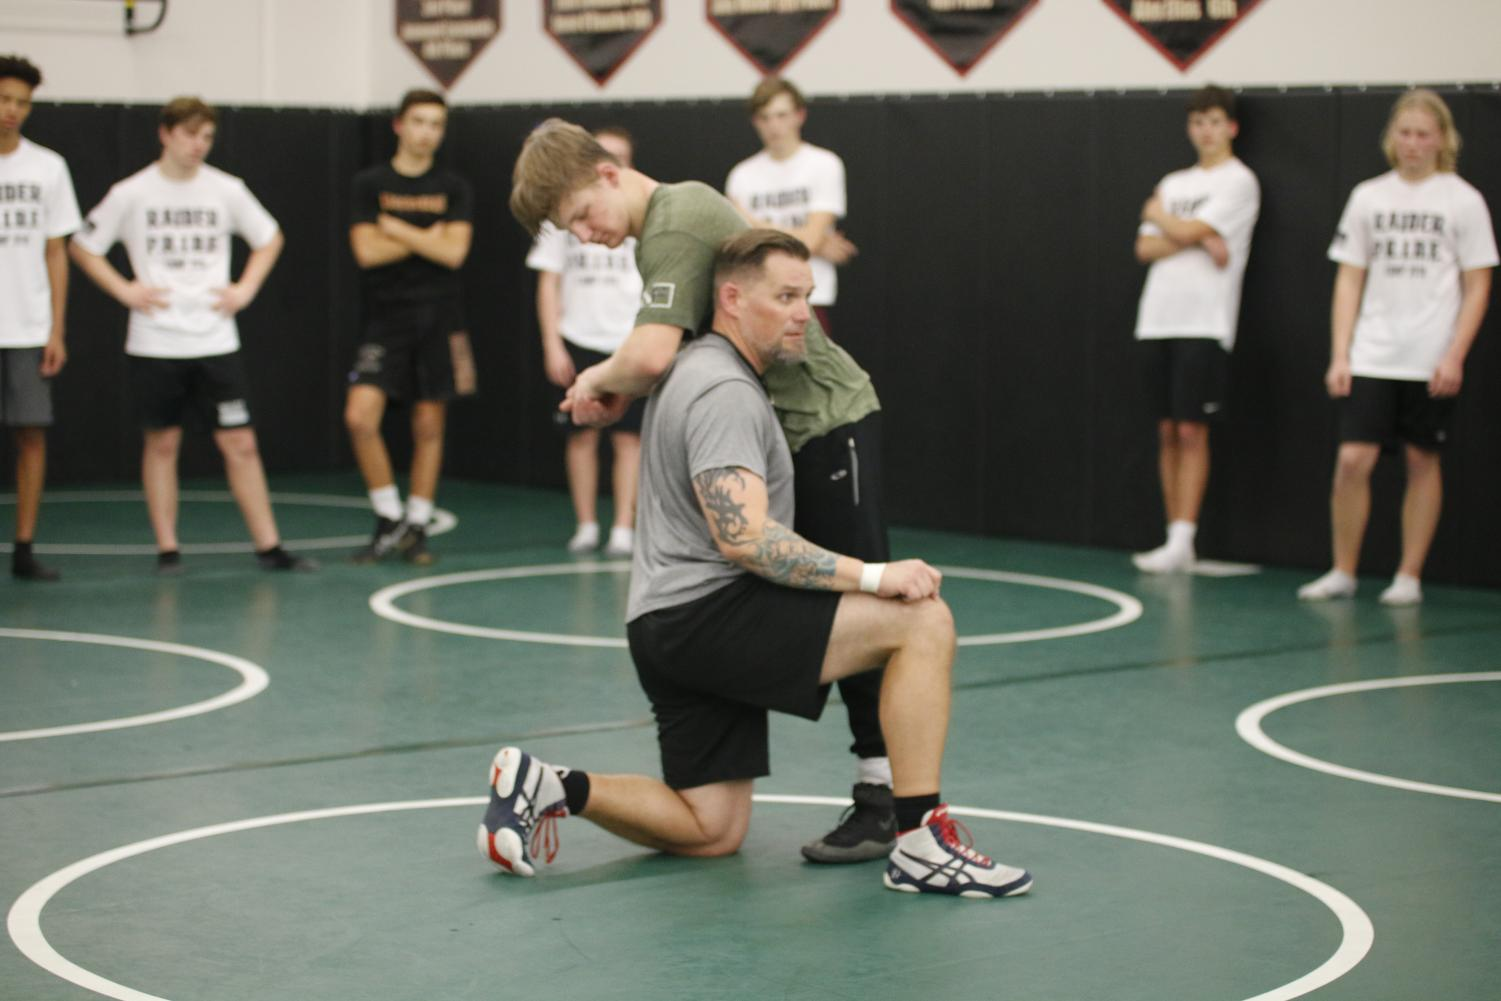 READY TO RUMBLE  Senior Thomas Tolbert and new wrestling coach Lehi Benton demonstrate a fundamental move for team members during an after-school practice.